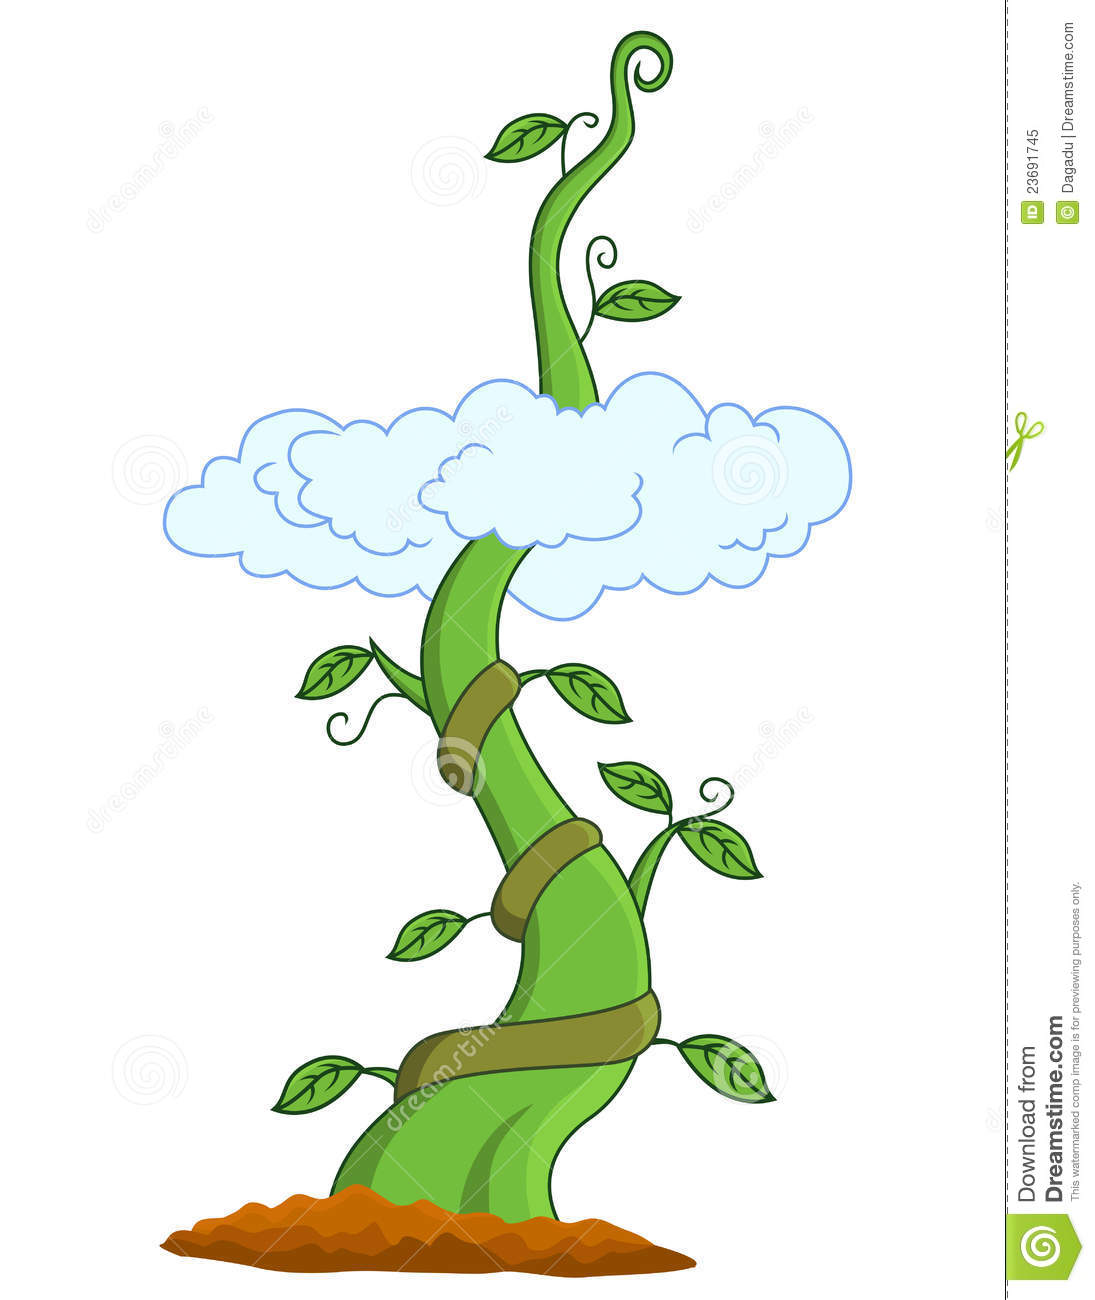 Royalty Free Stock Photo Beanstalk Image 23691745